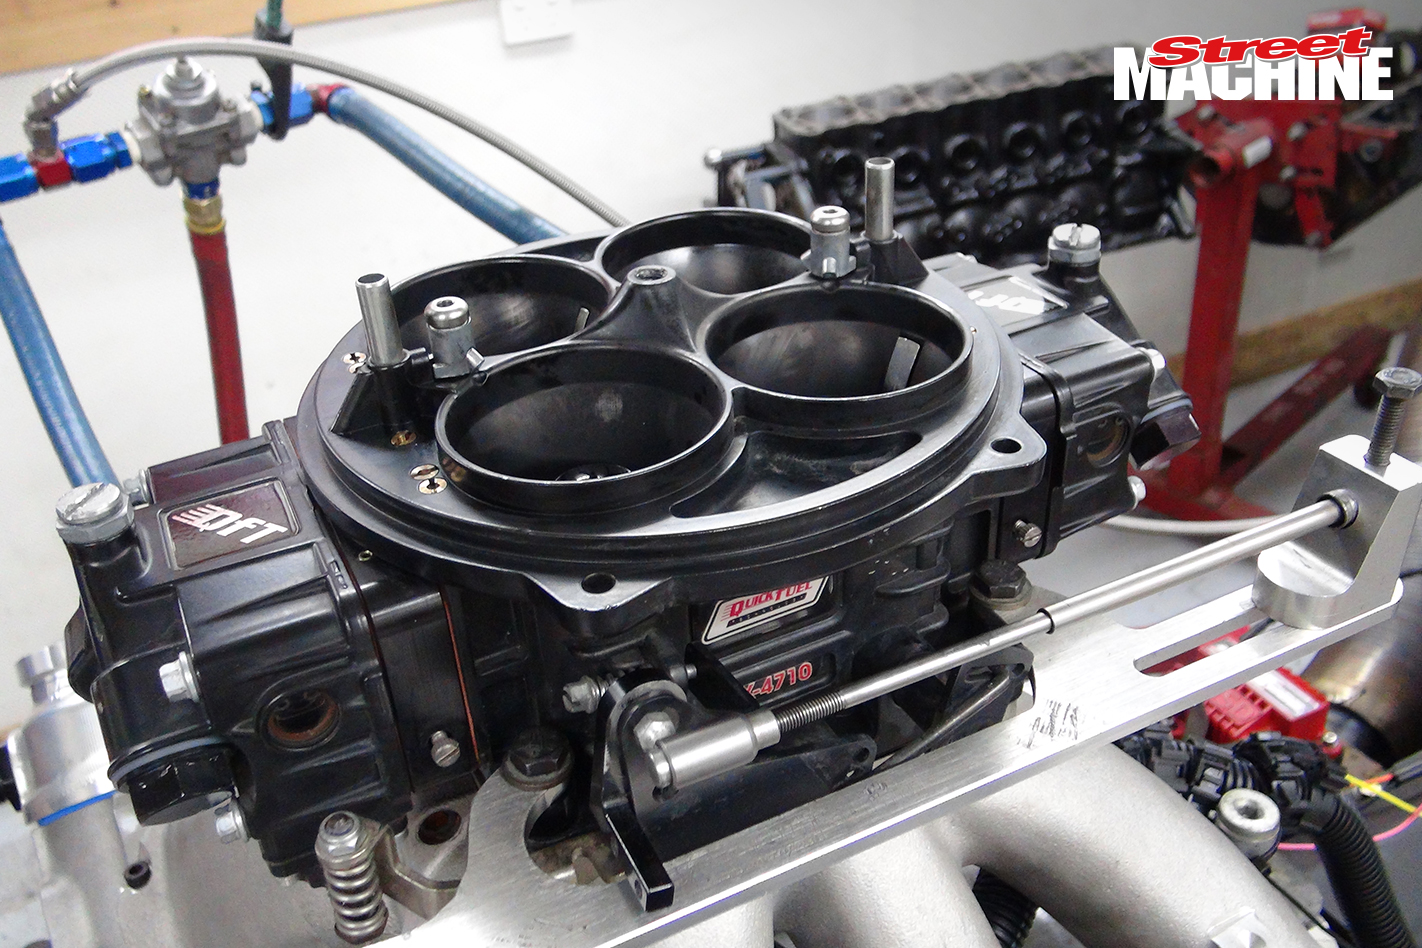 LSX 417Ci Engine Quickfuel 1050 Carb